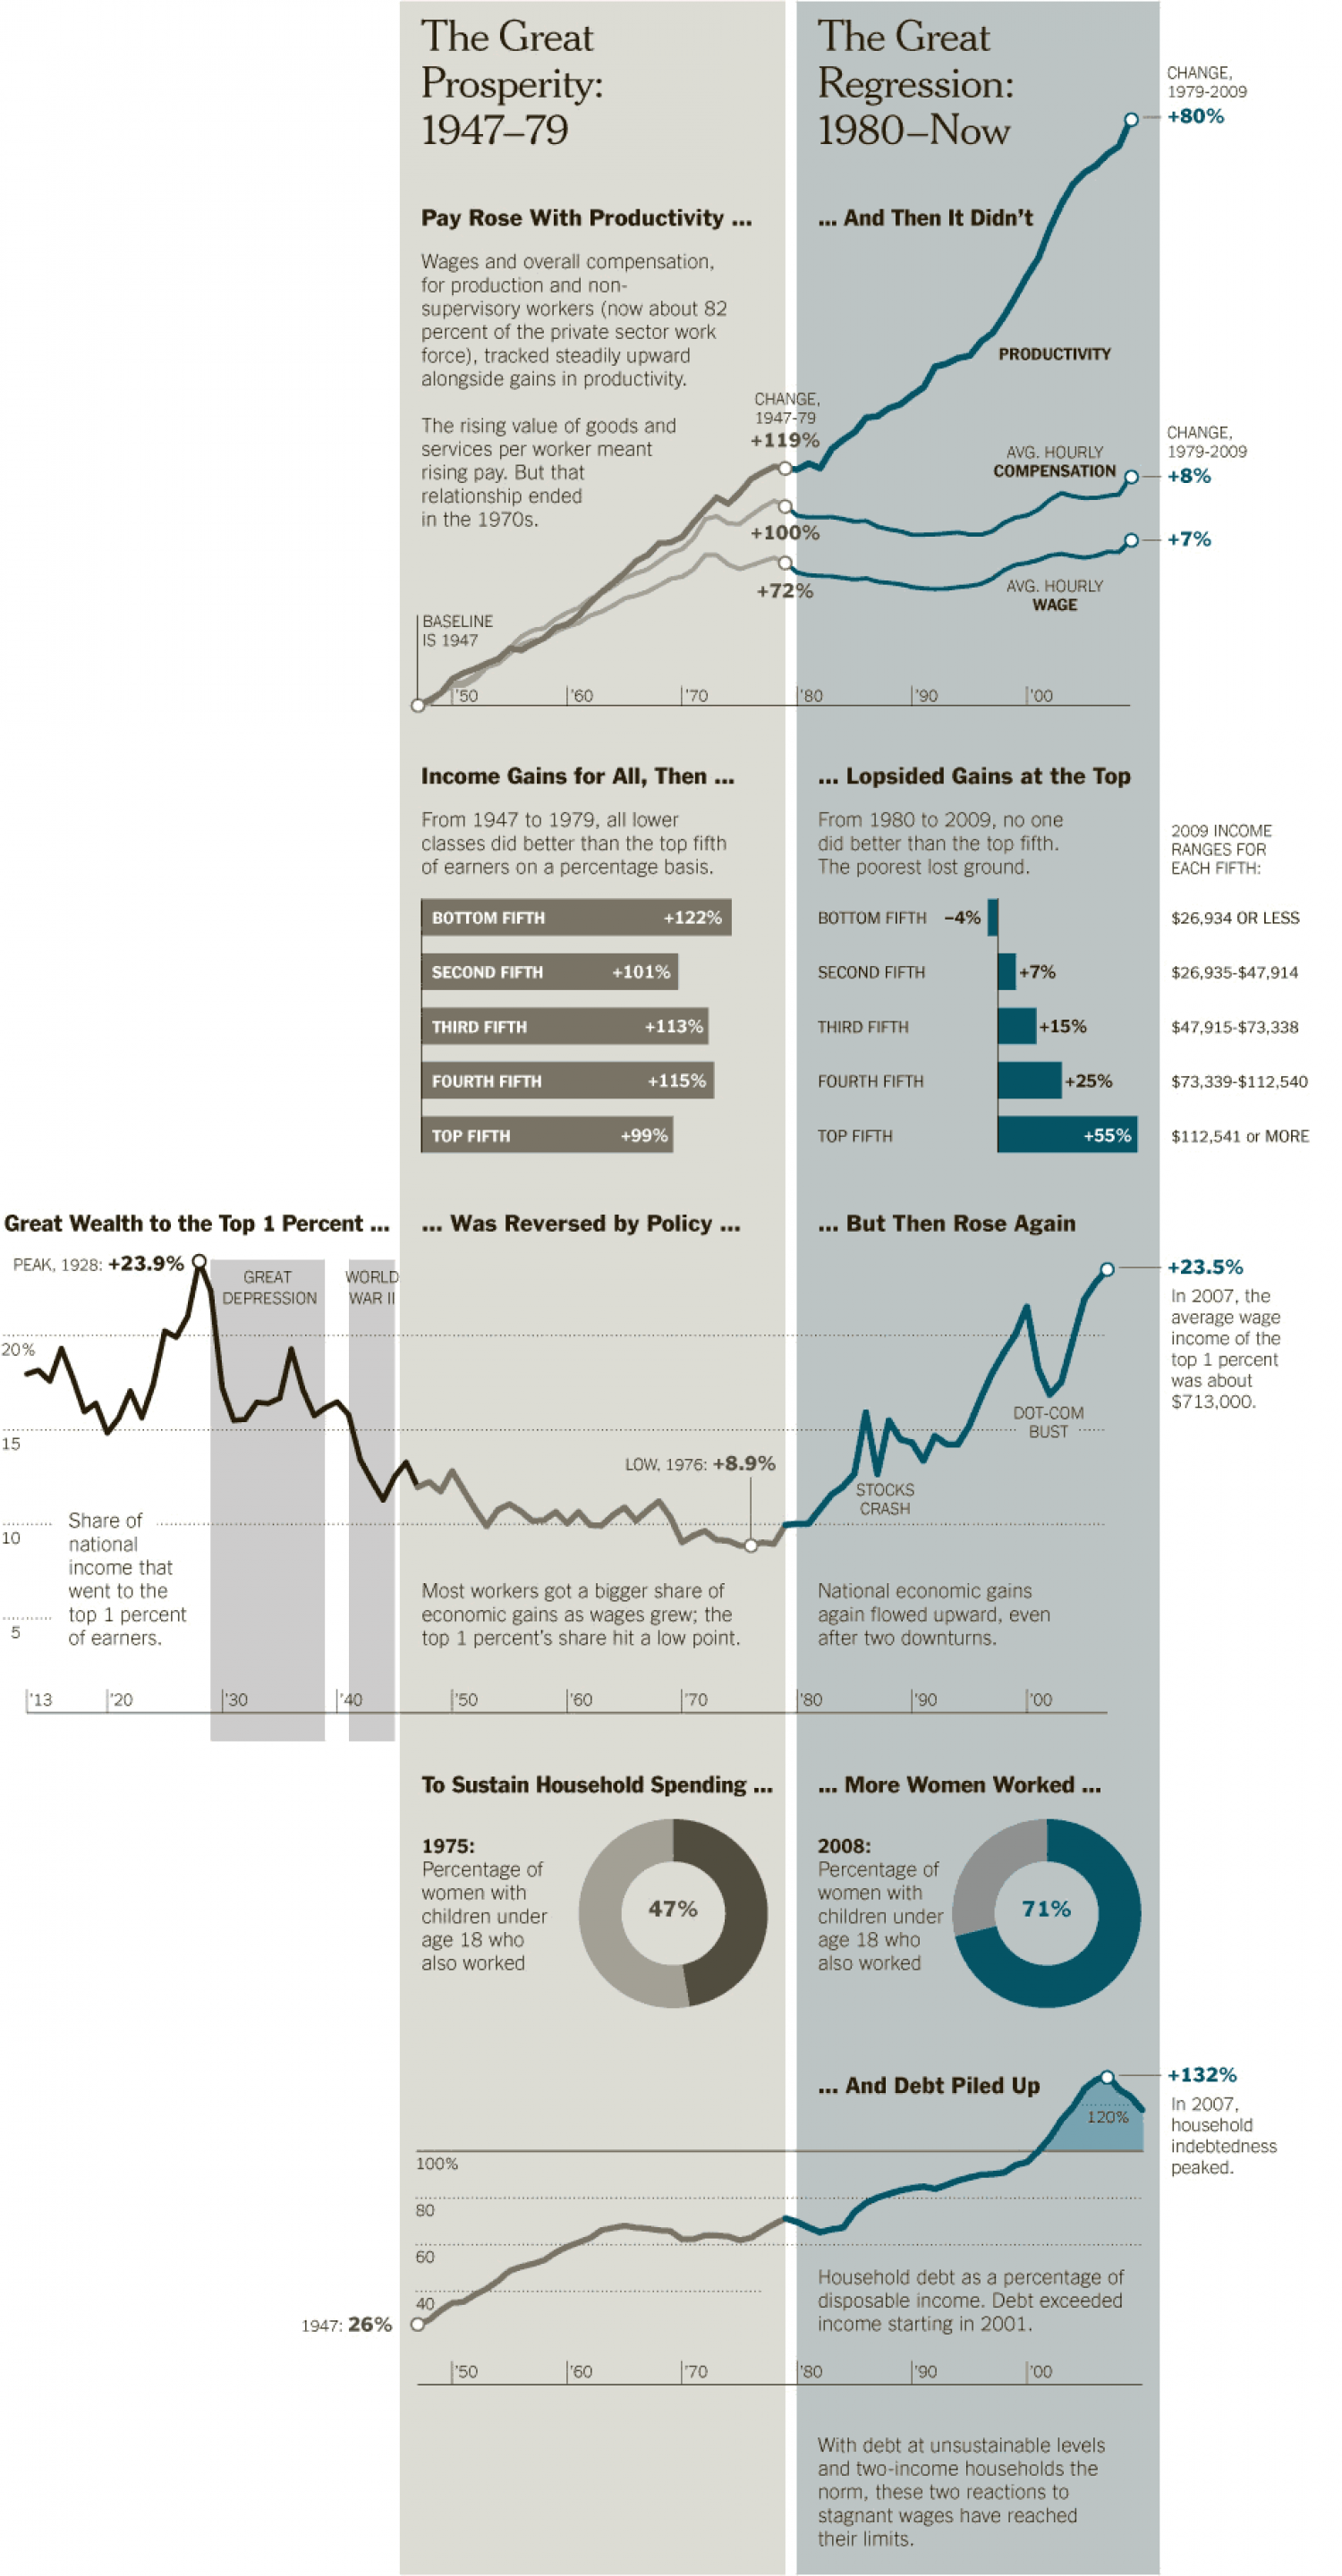 The Great Prosperity and The Great Regression Infographic